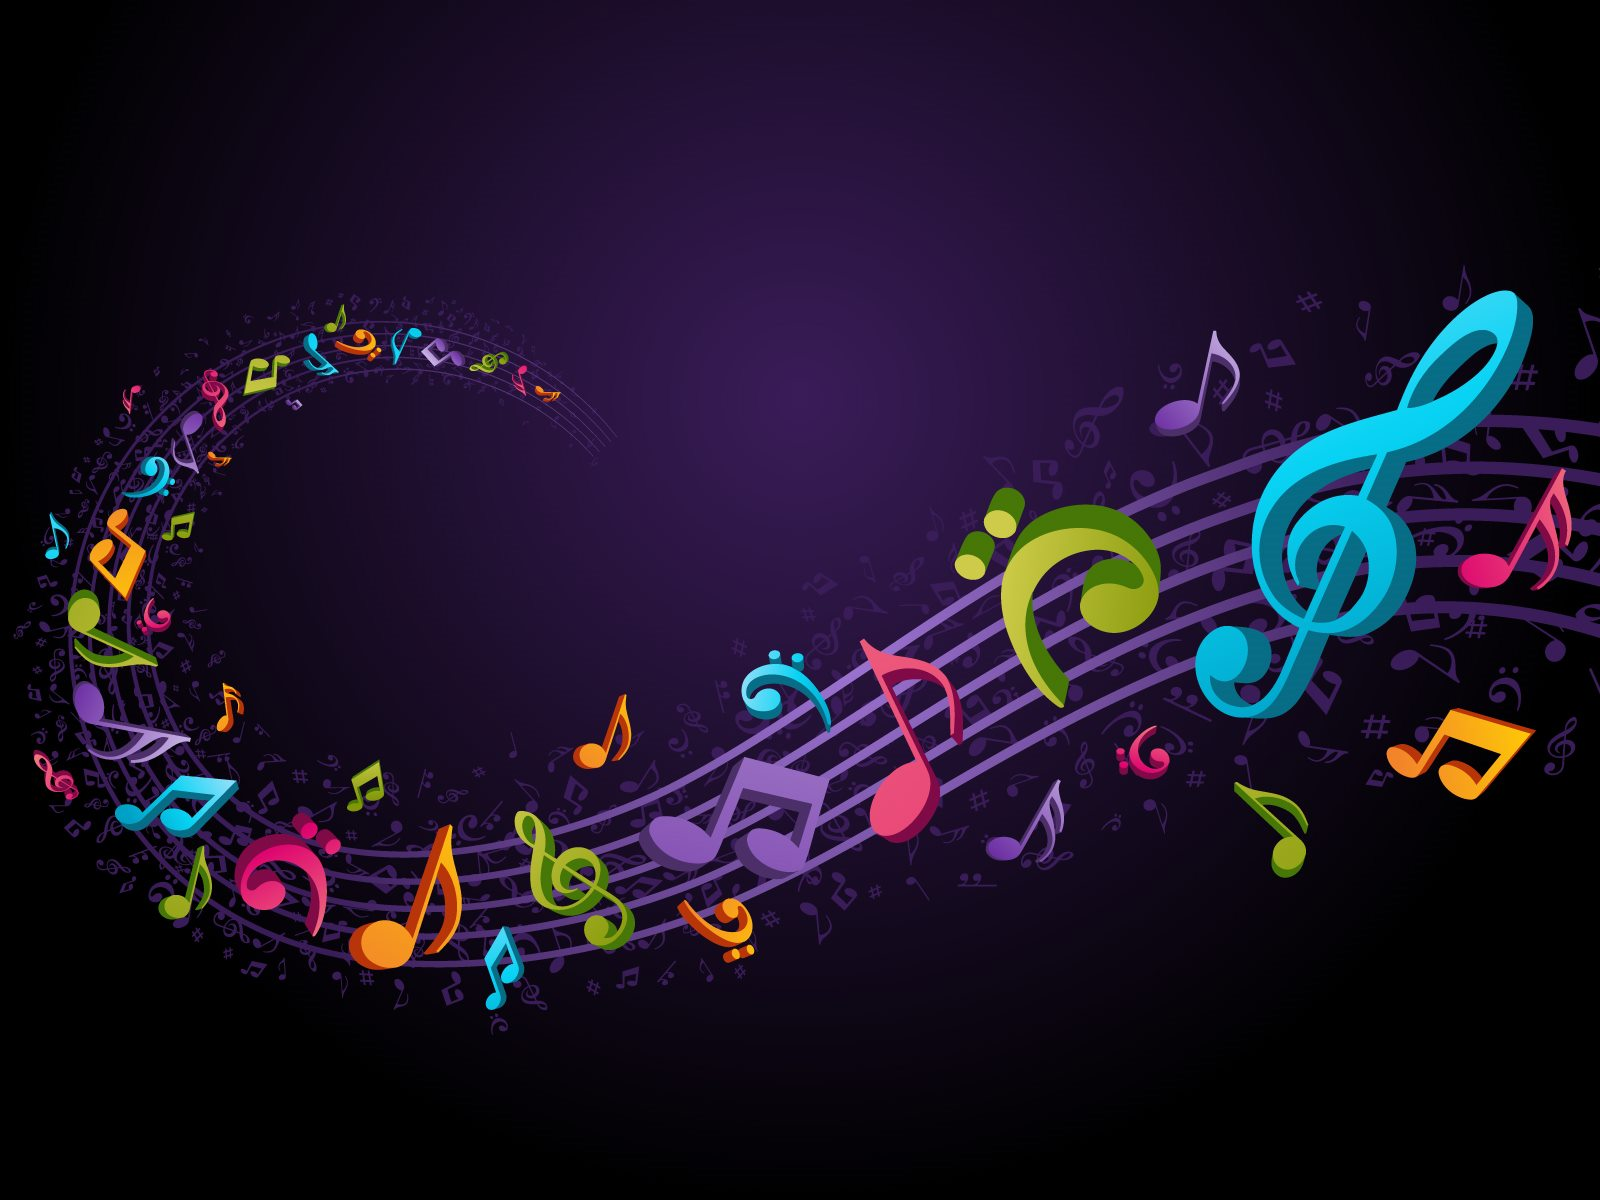 Sheet Music clipart colorful music #10